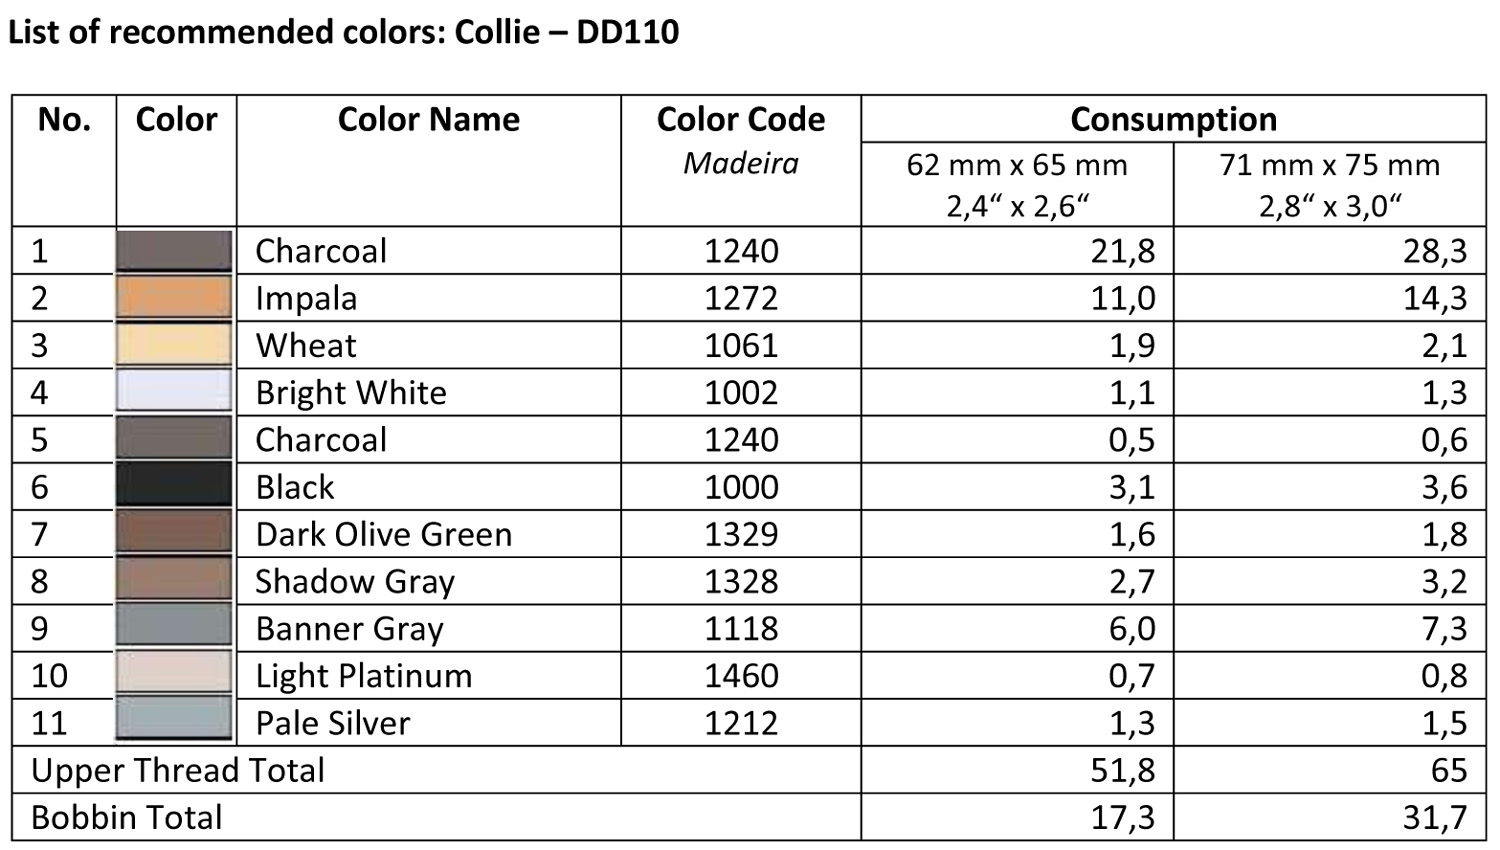 List of Recommended Colors - Collie DD110